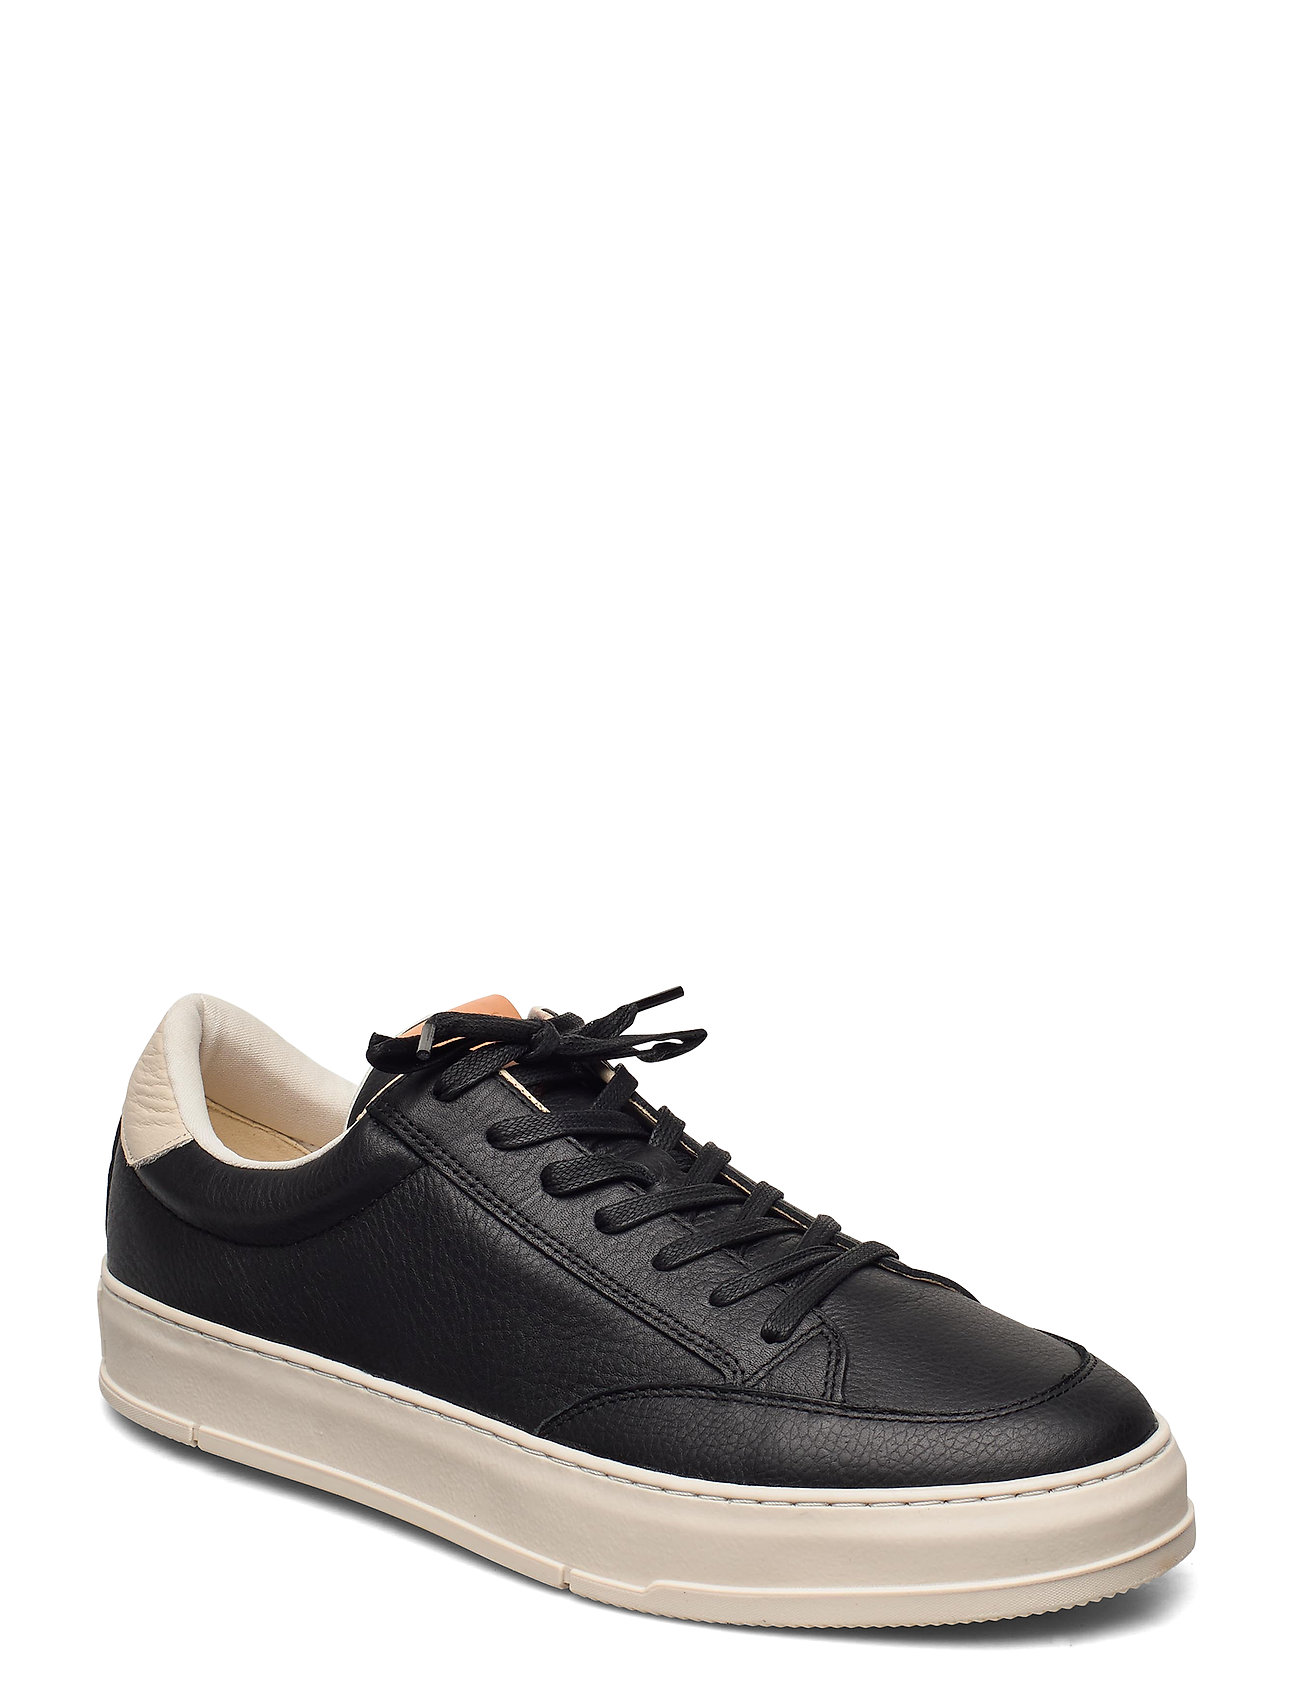 Image of John Low-top Sneakers Sort VAGABOND (3440542469)